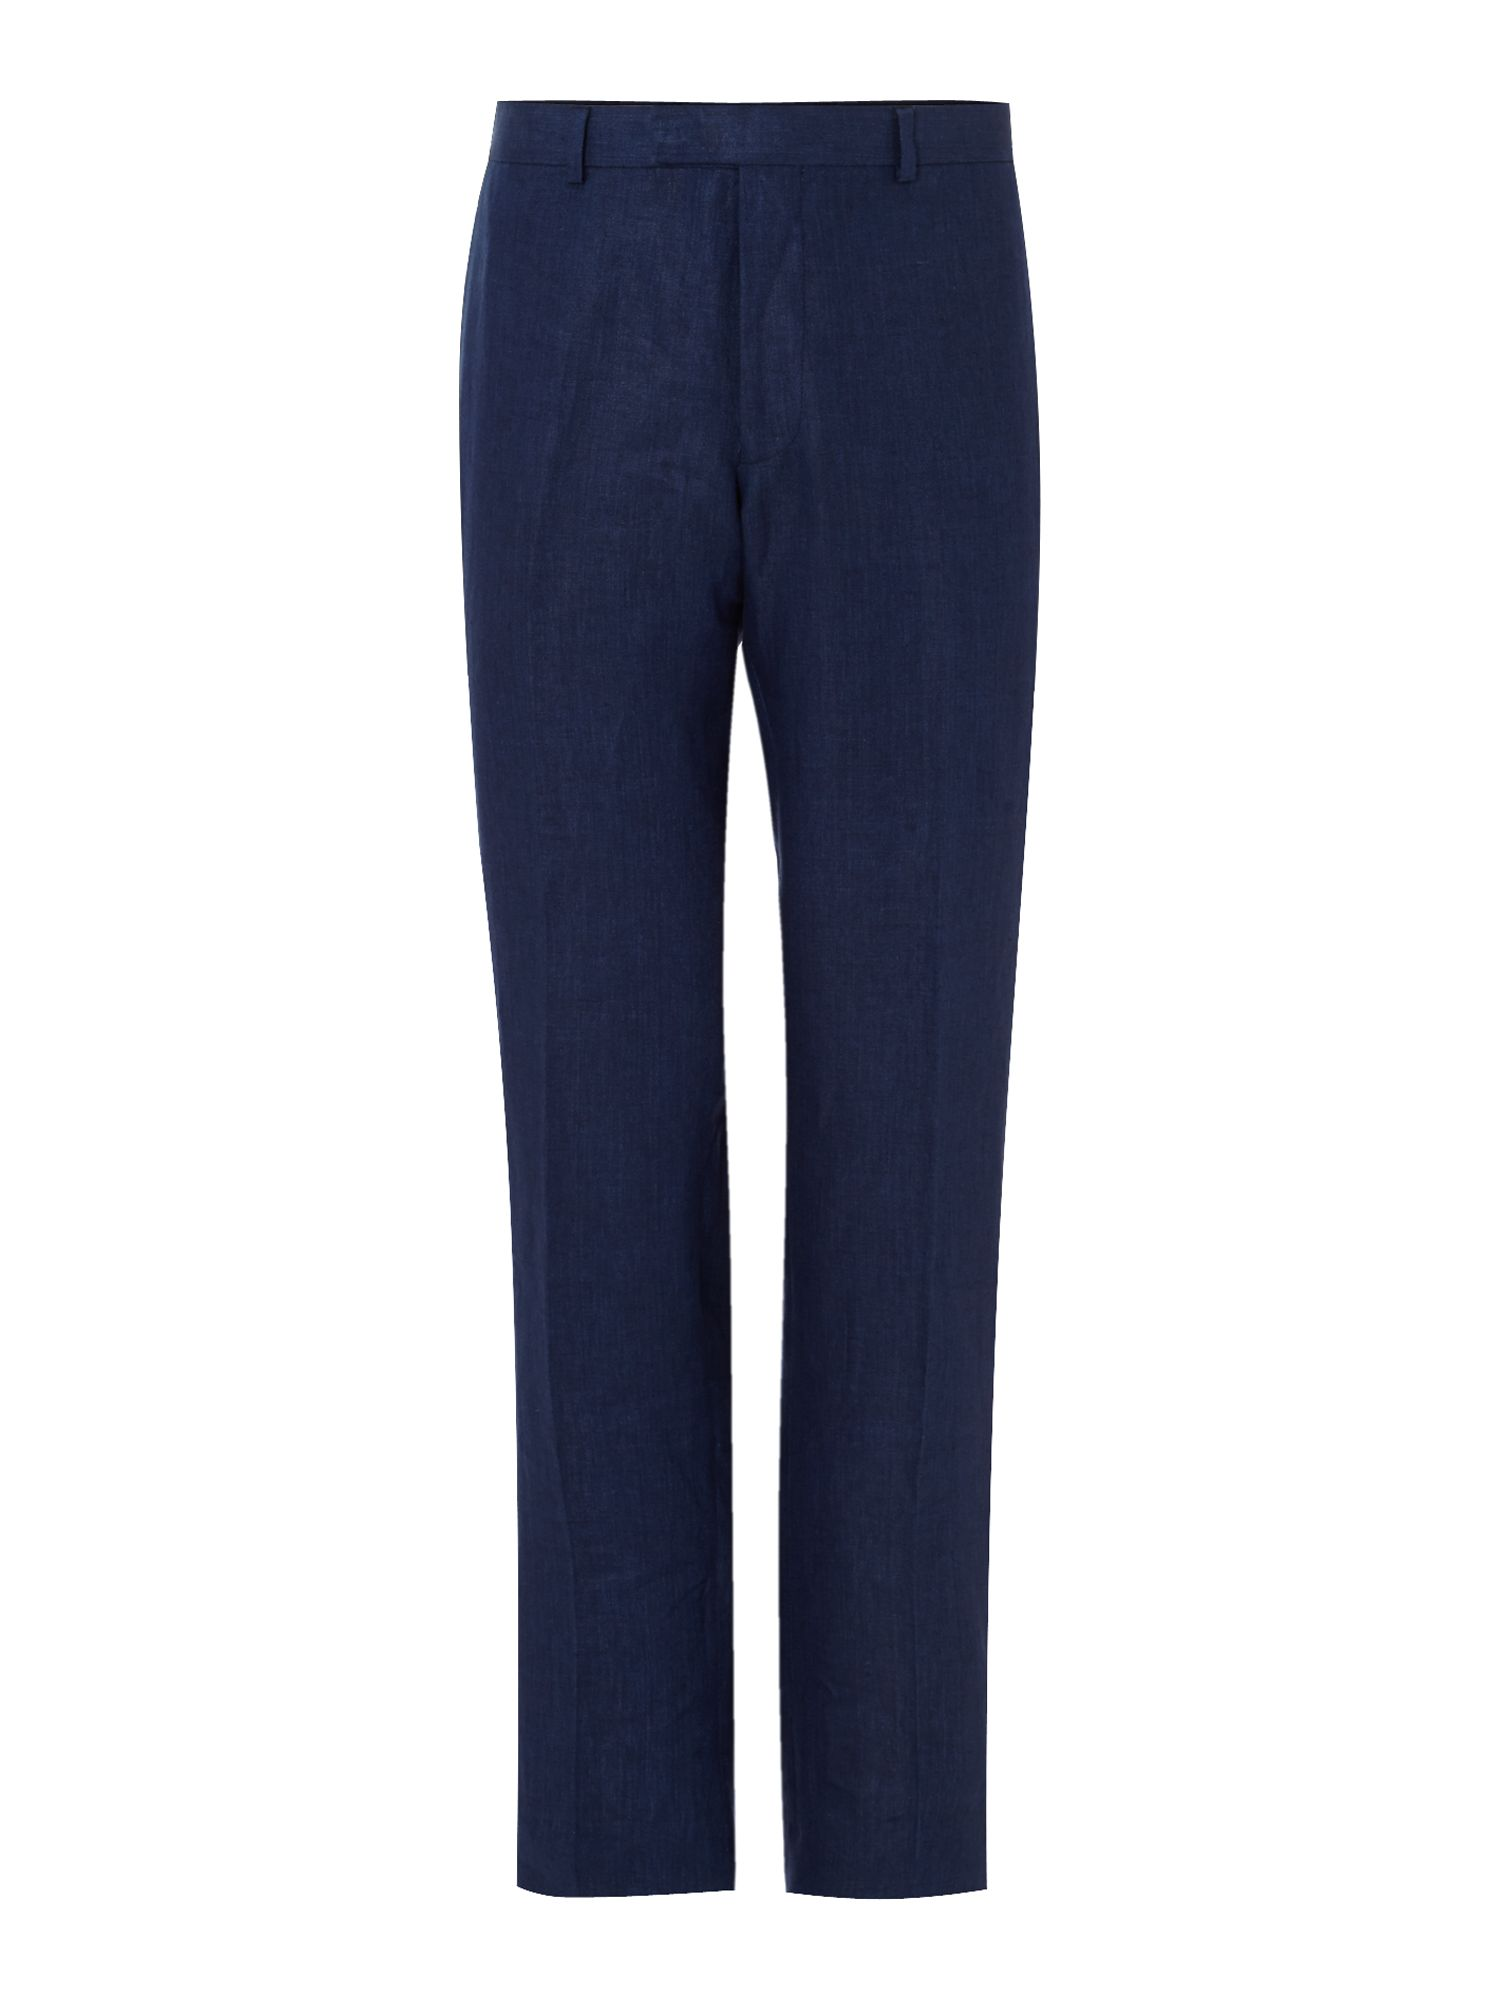 Newland Linen Suit Trousers